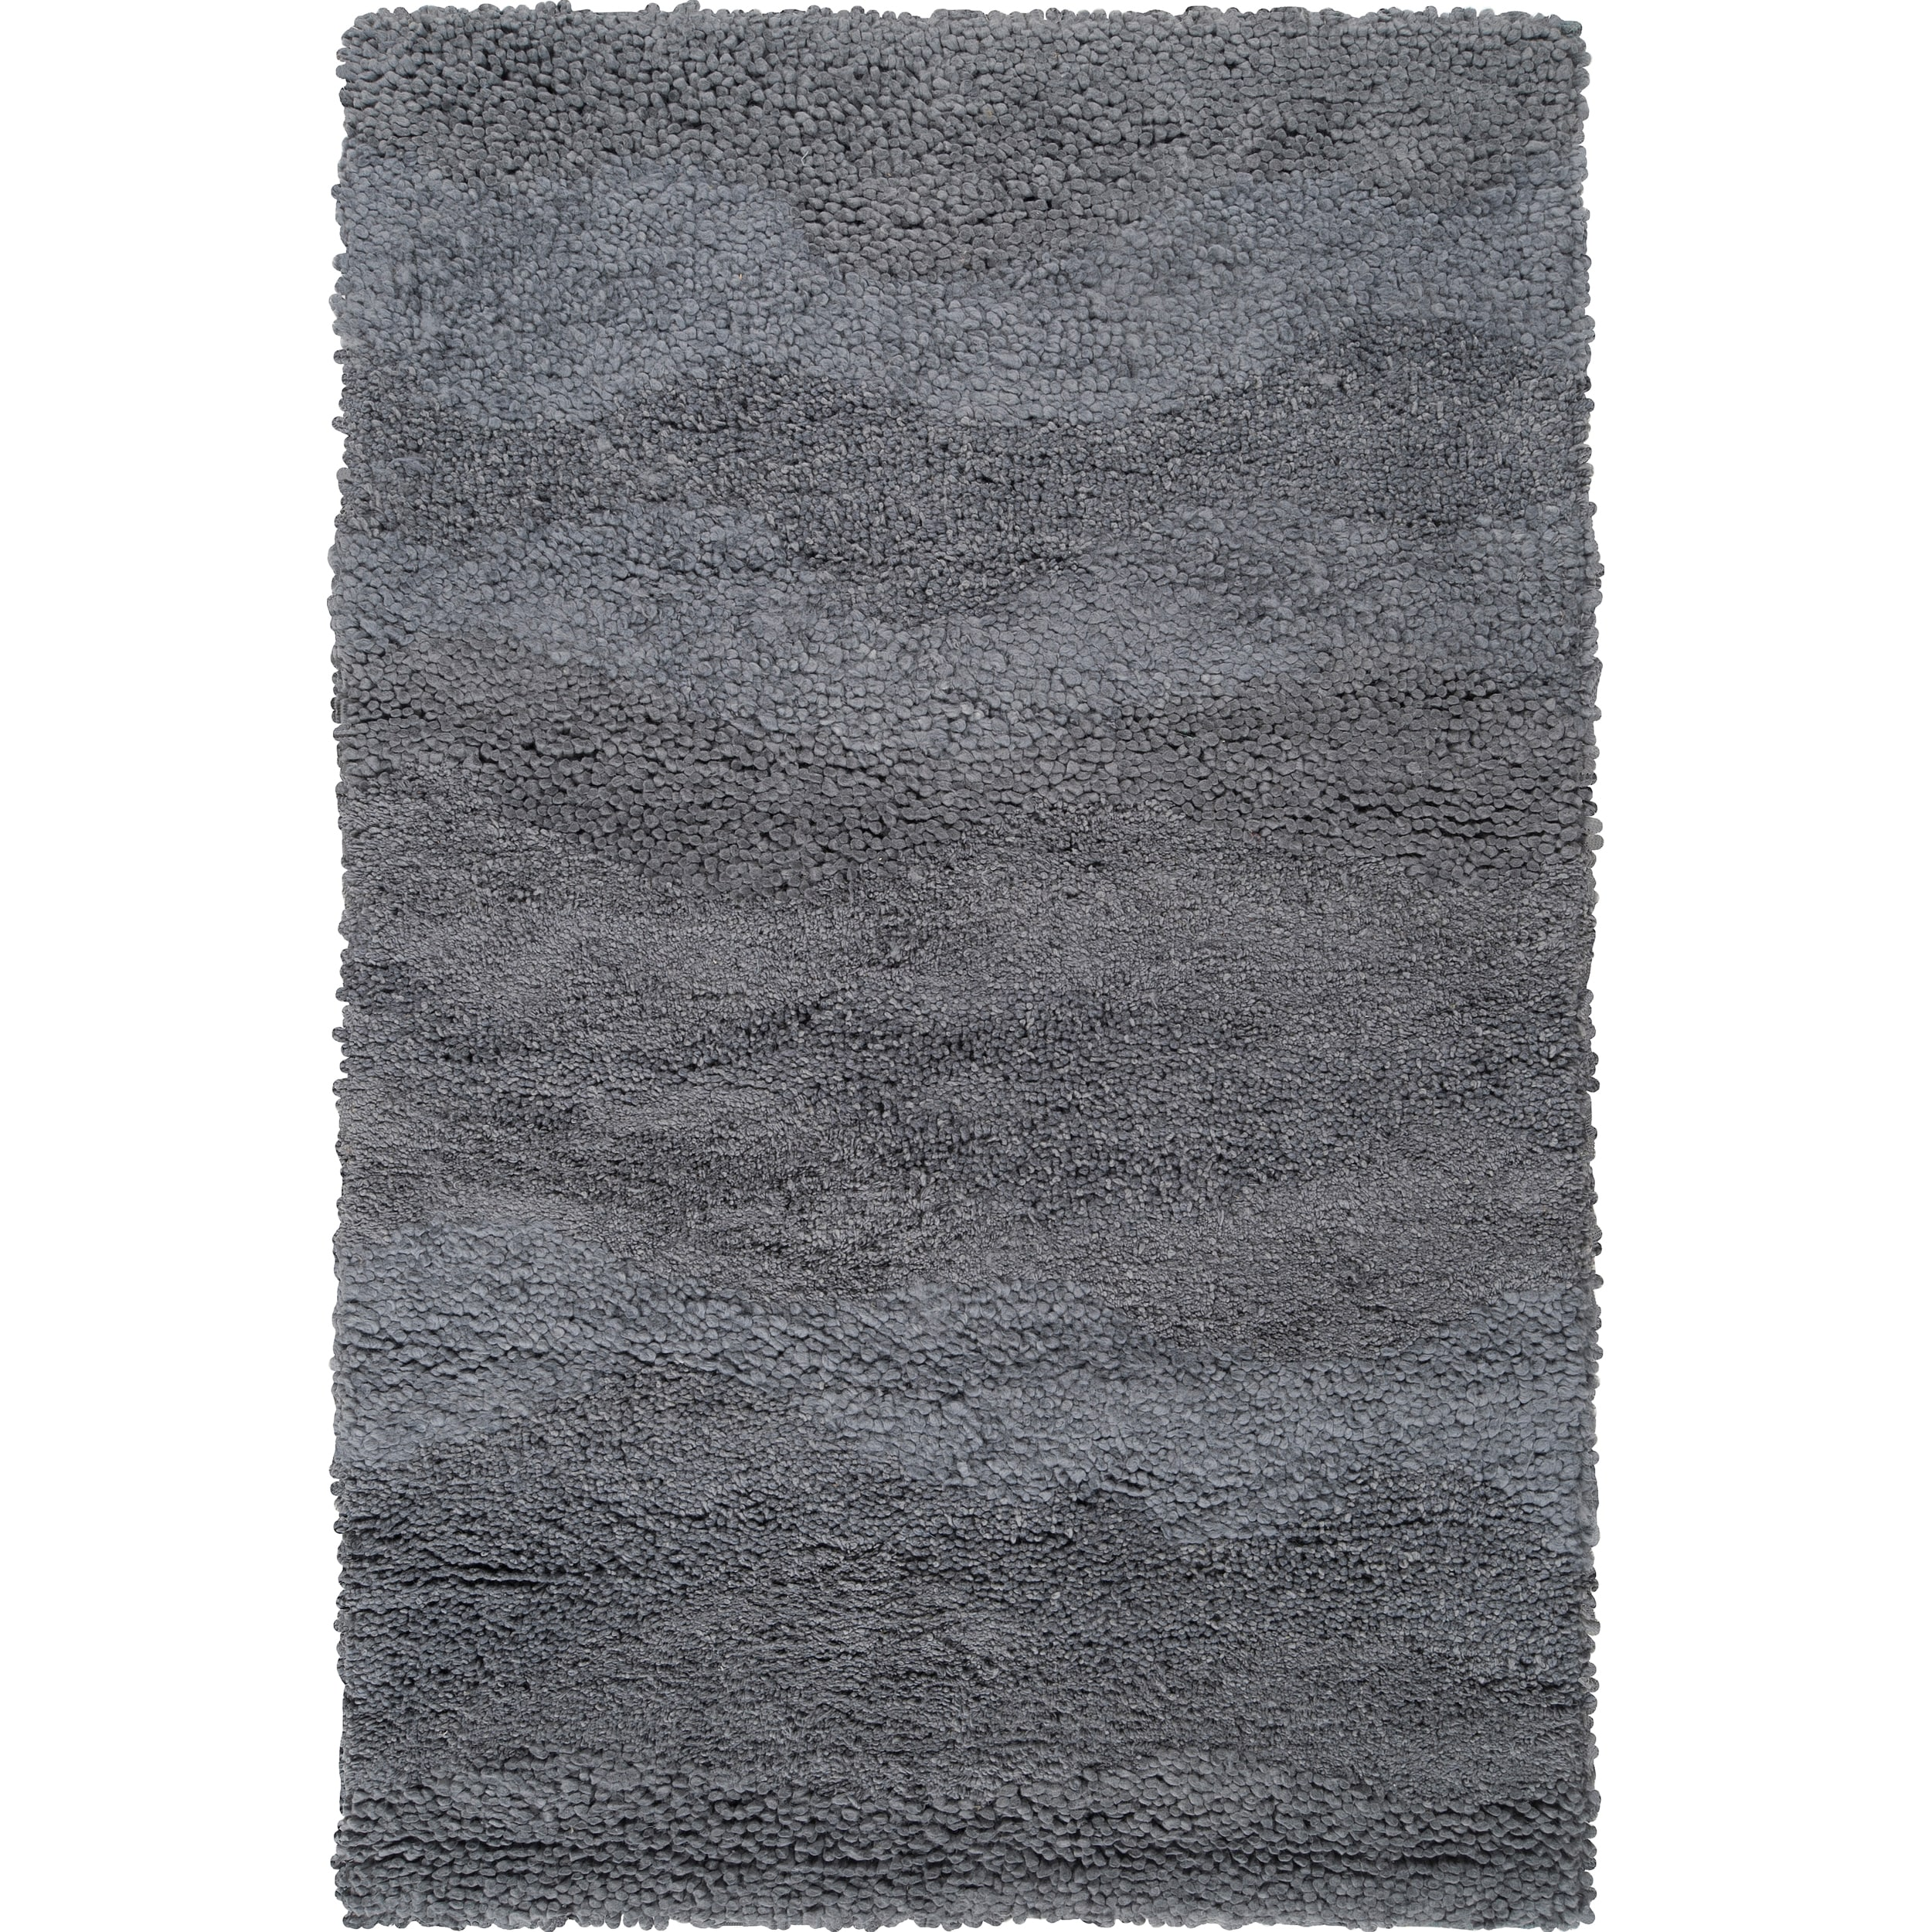 Candice Olson Hand-woven Gray Topary Wool Rug (5' x 8')